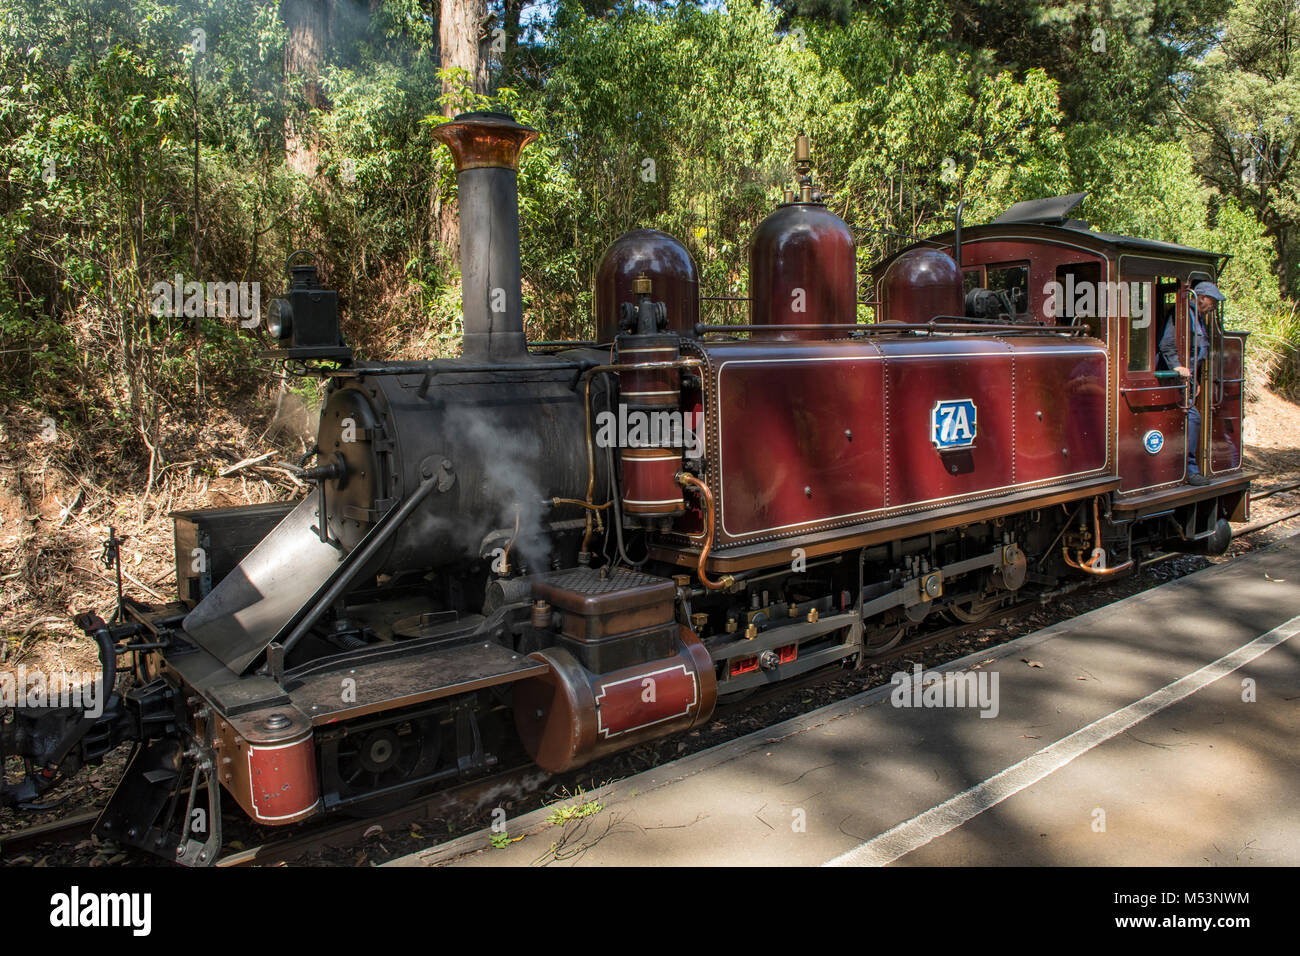 Puffing Billy Steam Locomotive No. 7A at Lakeside, Victoria, Australia - Stock Image